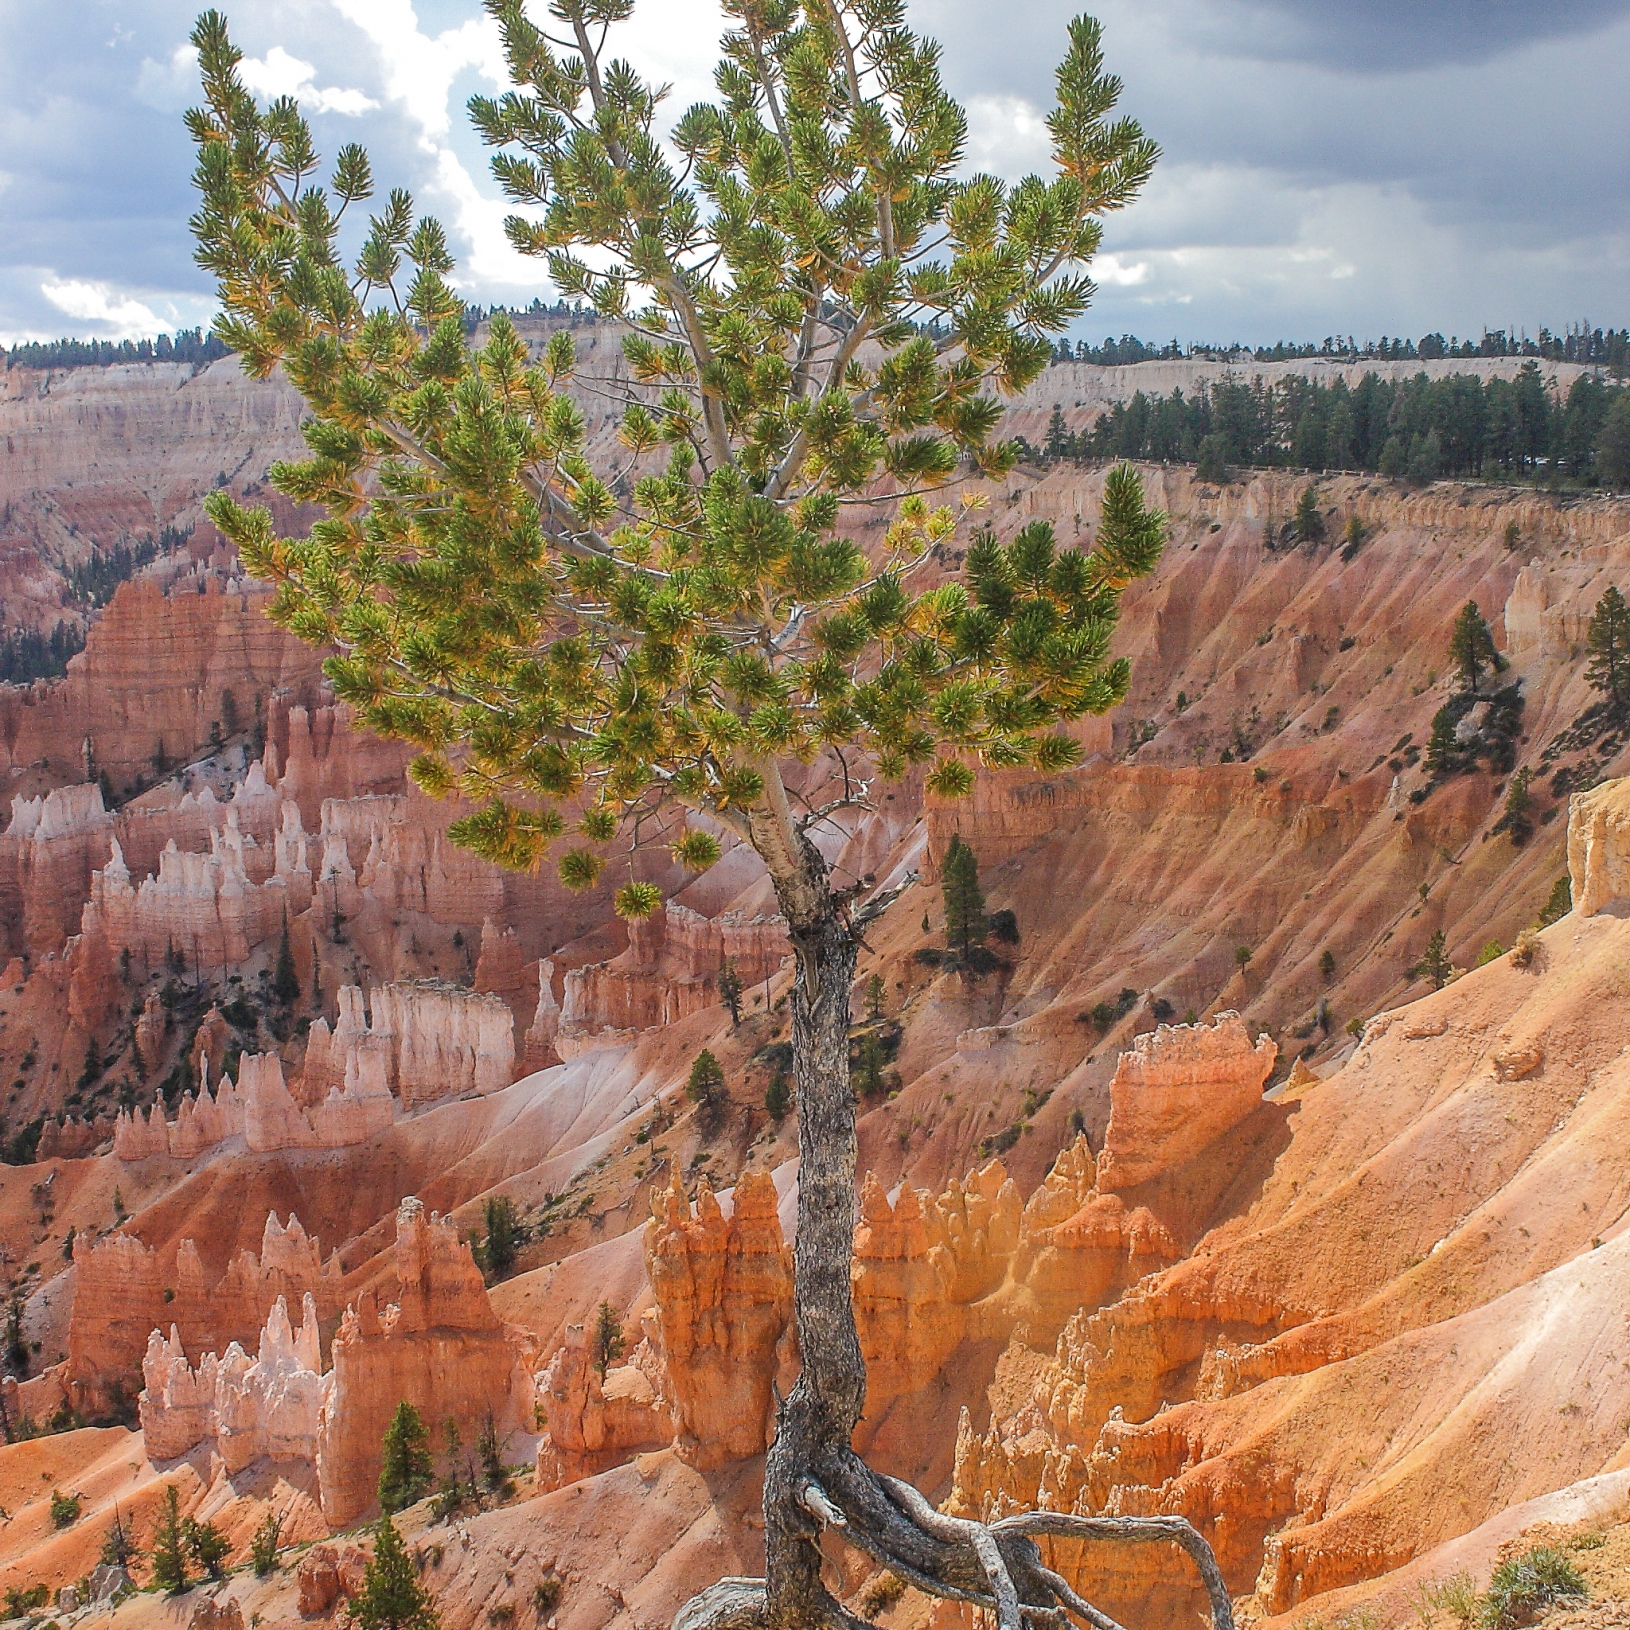 An image of the beautiful Bryce Canyon from Navajo Loop Trail